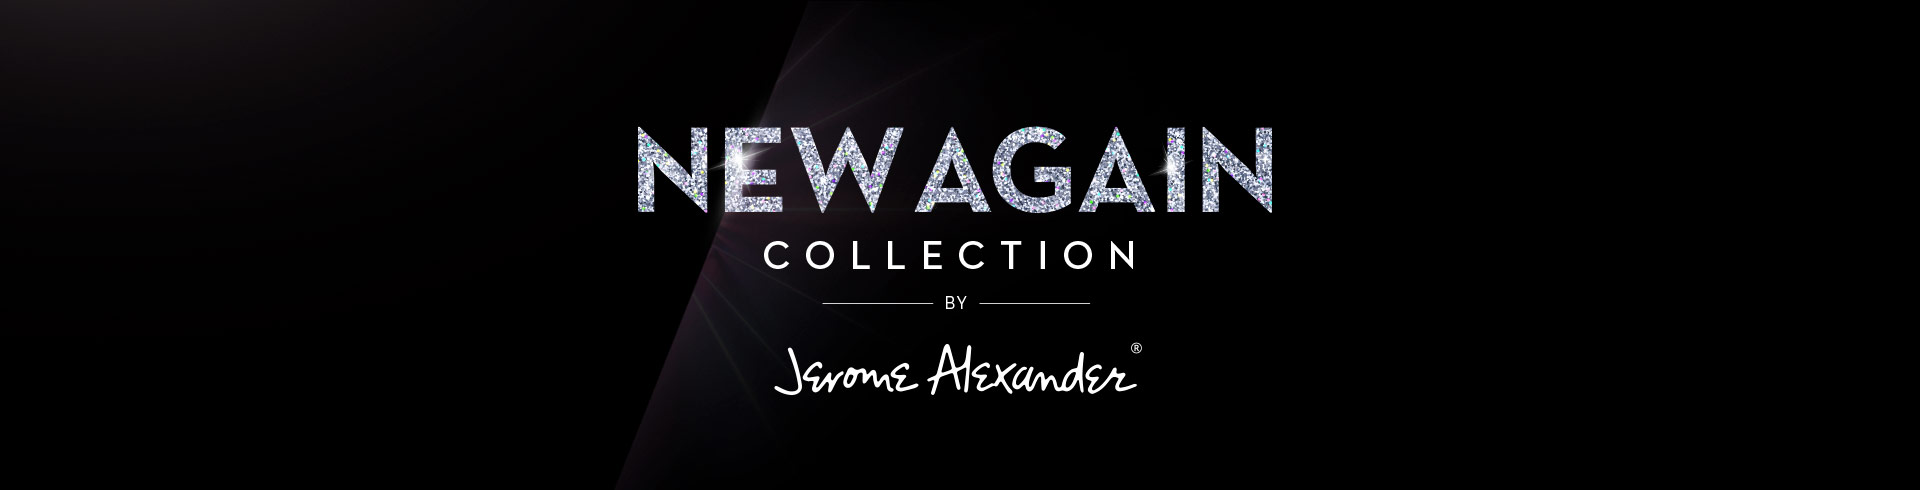 New Again Collection by Jerome Alexander